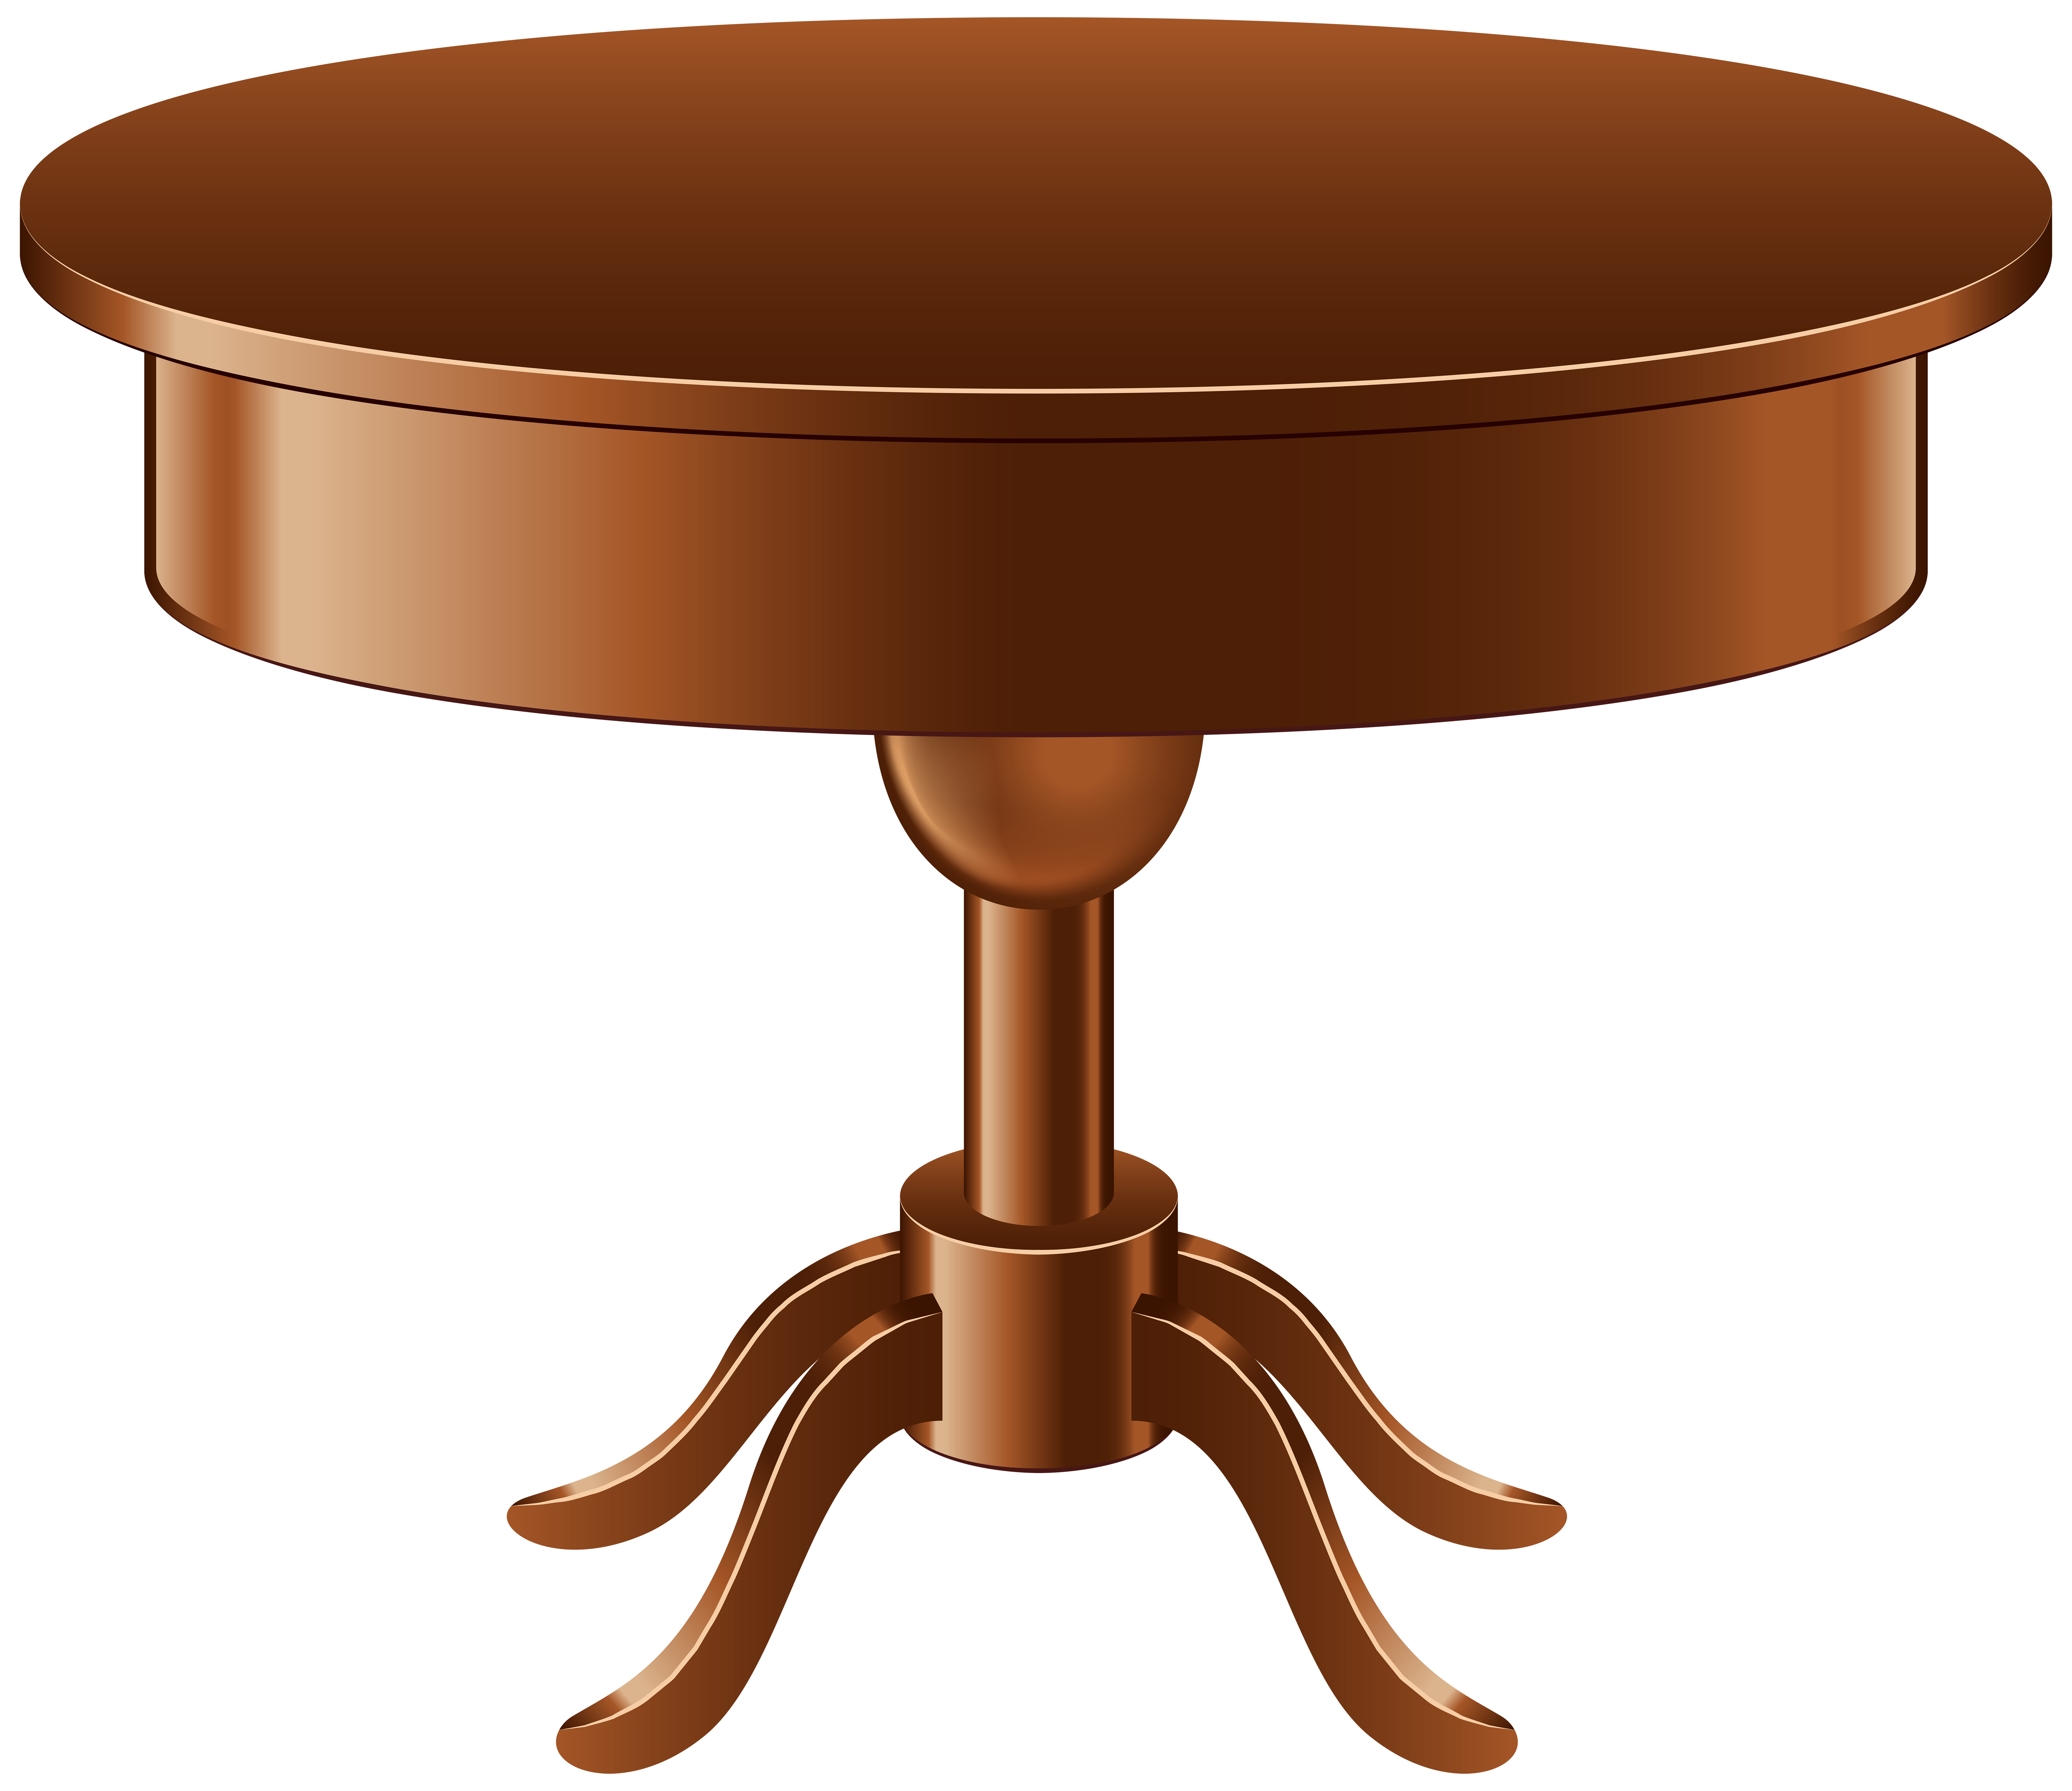 Table ovale png transparent. Jeu clipart baby-foot